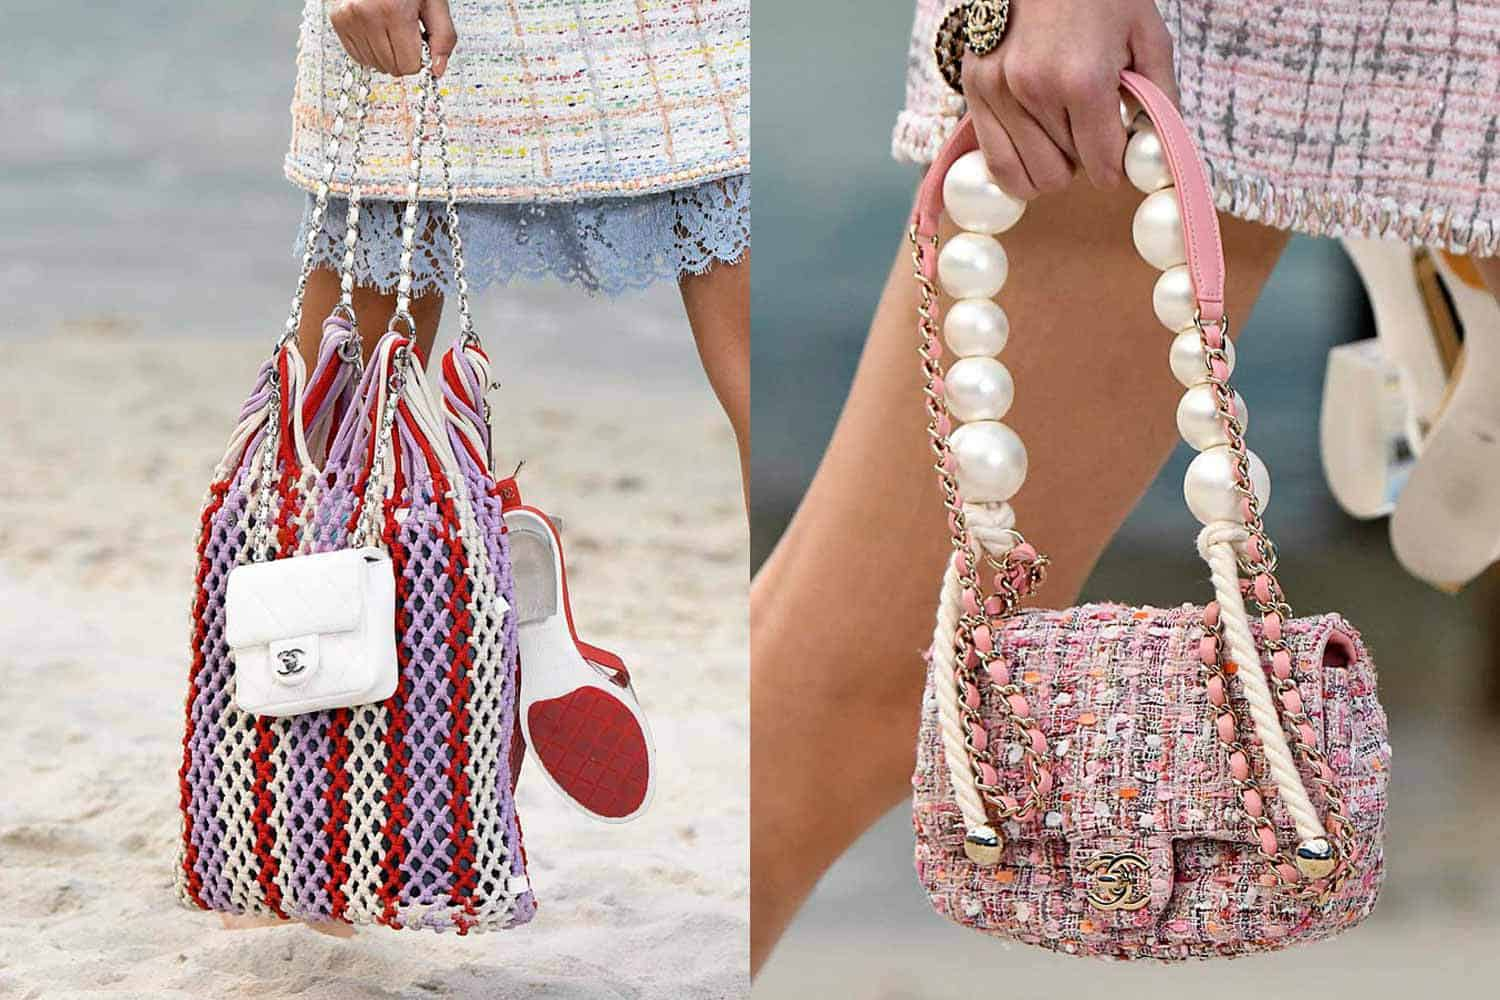 f57354fbea6724 39 Lust-Worthy Bags From Chanel's Beach-Themed Spring 2019 Show